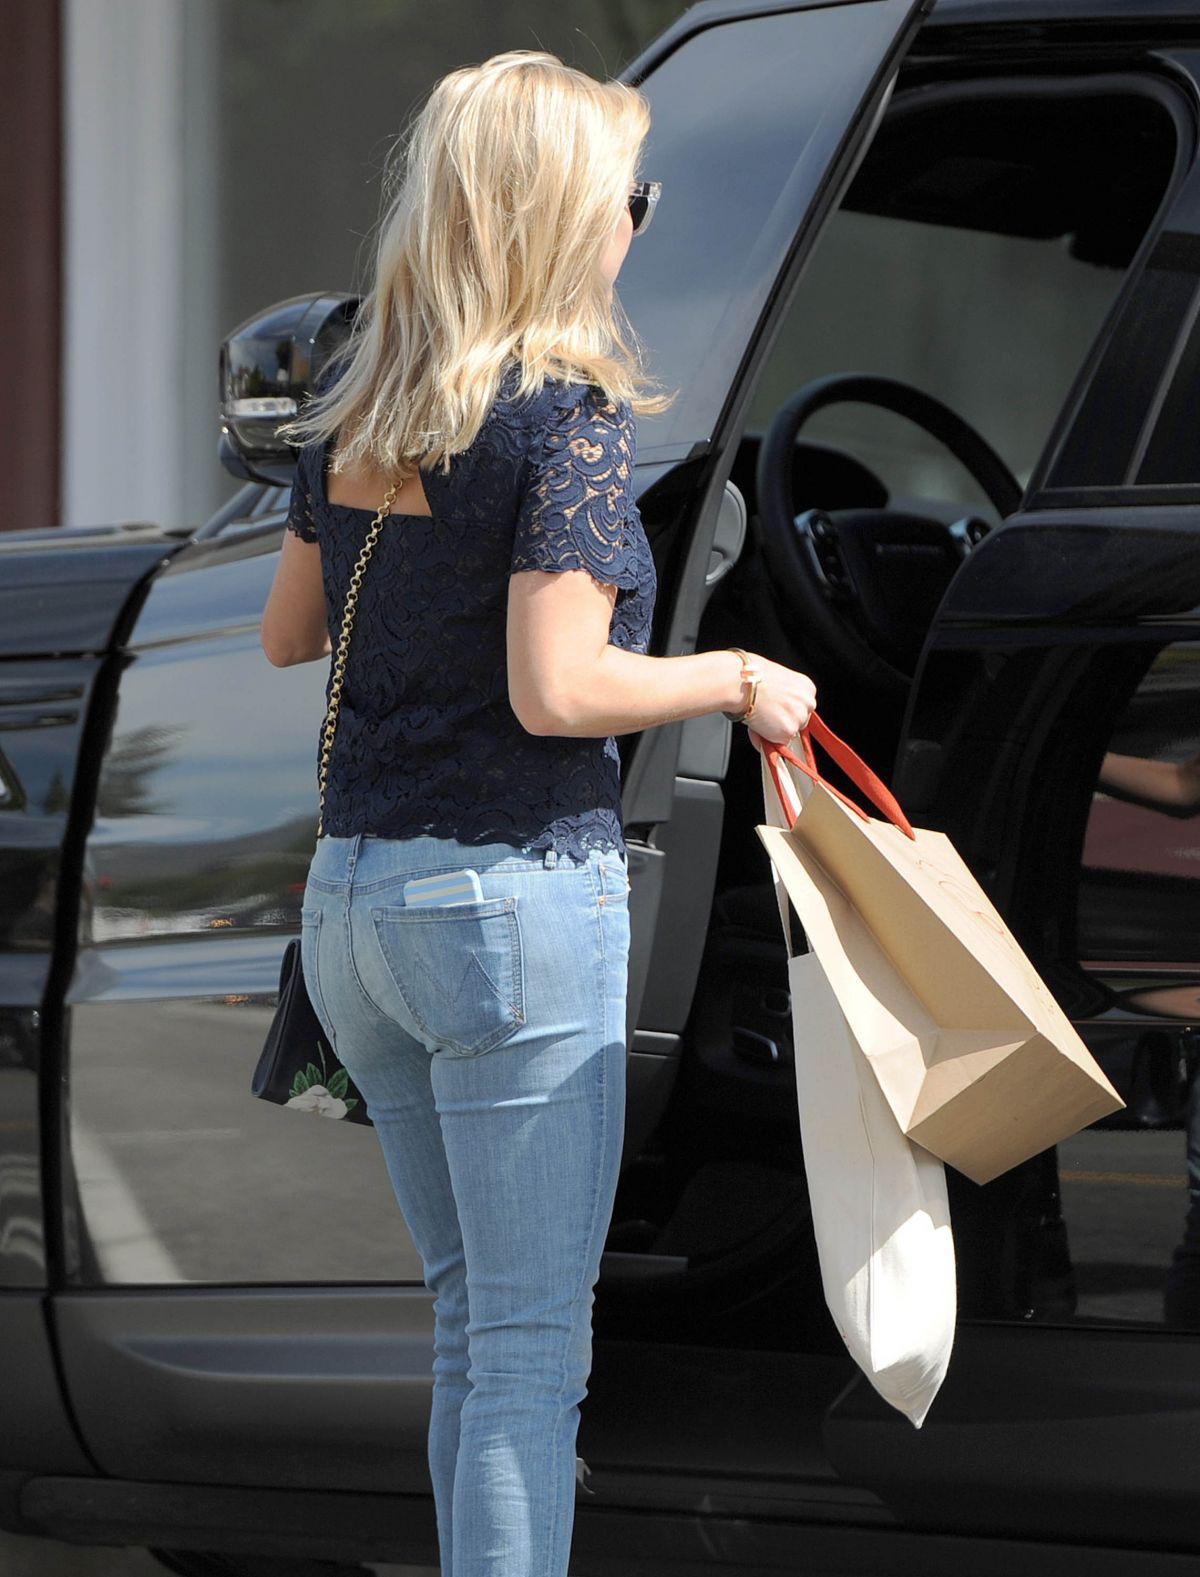 Ass Reese Witherspoon nude (66 photos), Tits, Paparazzi, Boobs, bra 2006